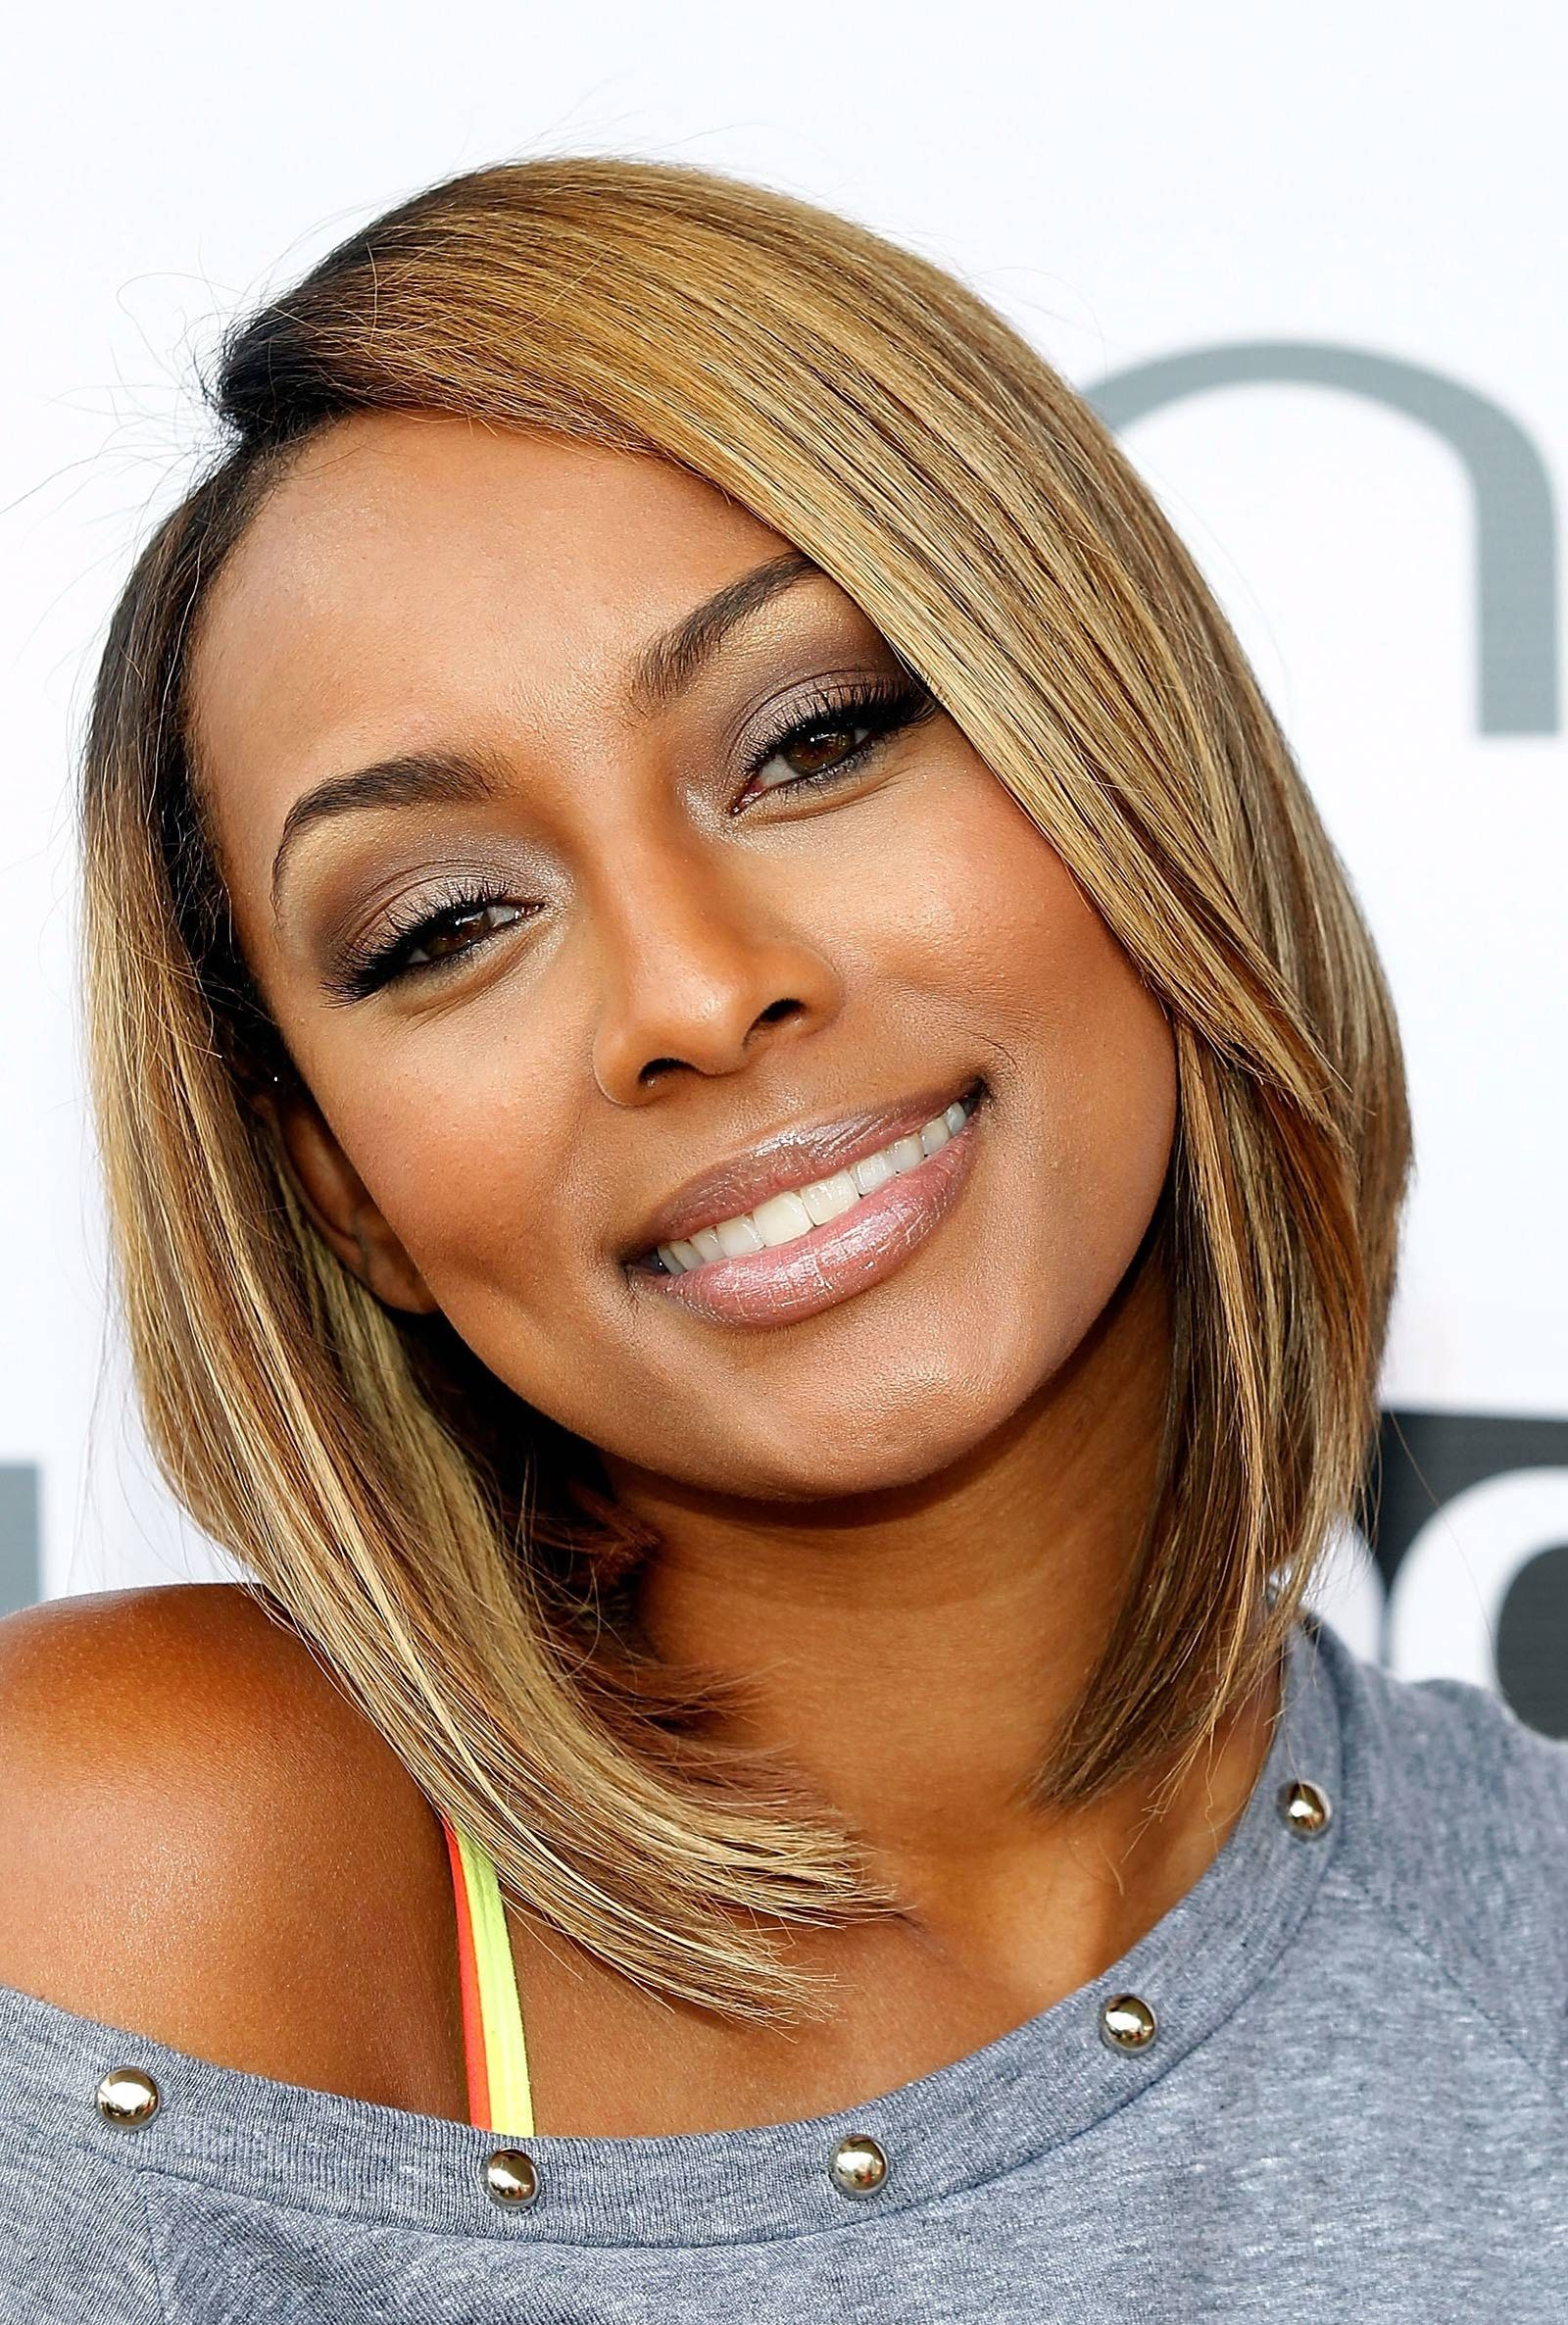 Hilson Keri blonde hairstyles forecast to wear in everyday in 2019